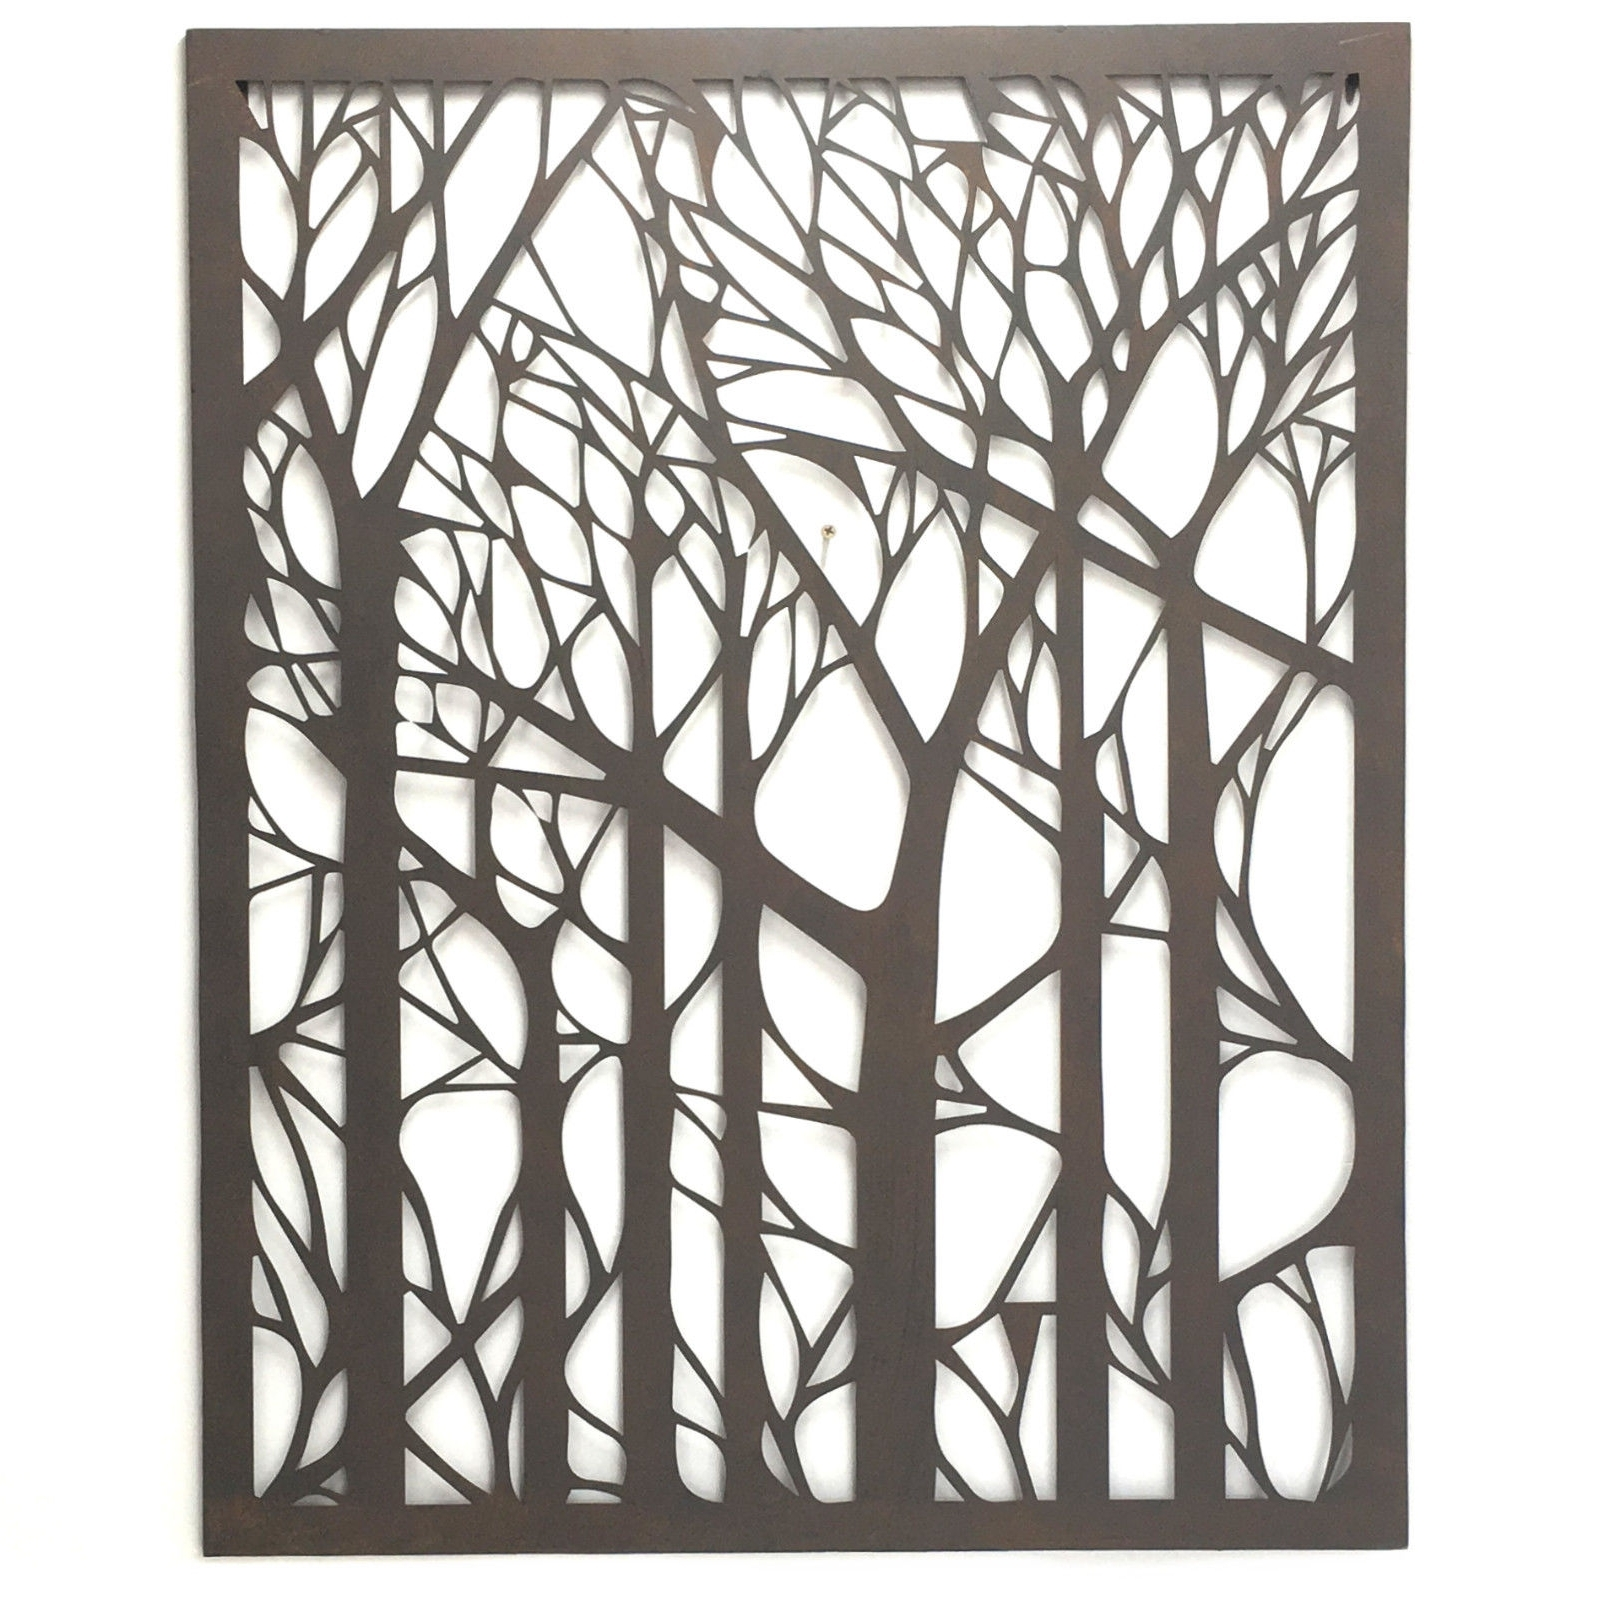 Metal Wall Accents Within 2017 Outdoor : Metal Wall Sculpture Outdoor Wall Decorations Garden (View 12 of 15)